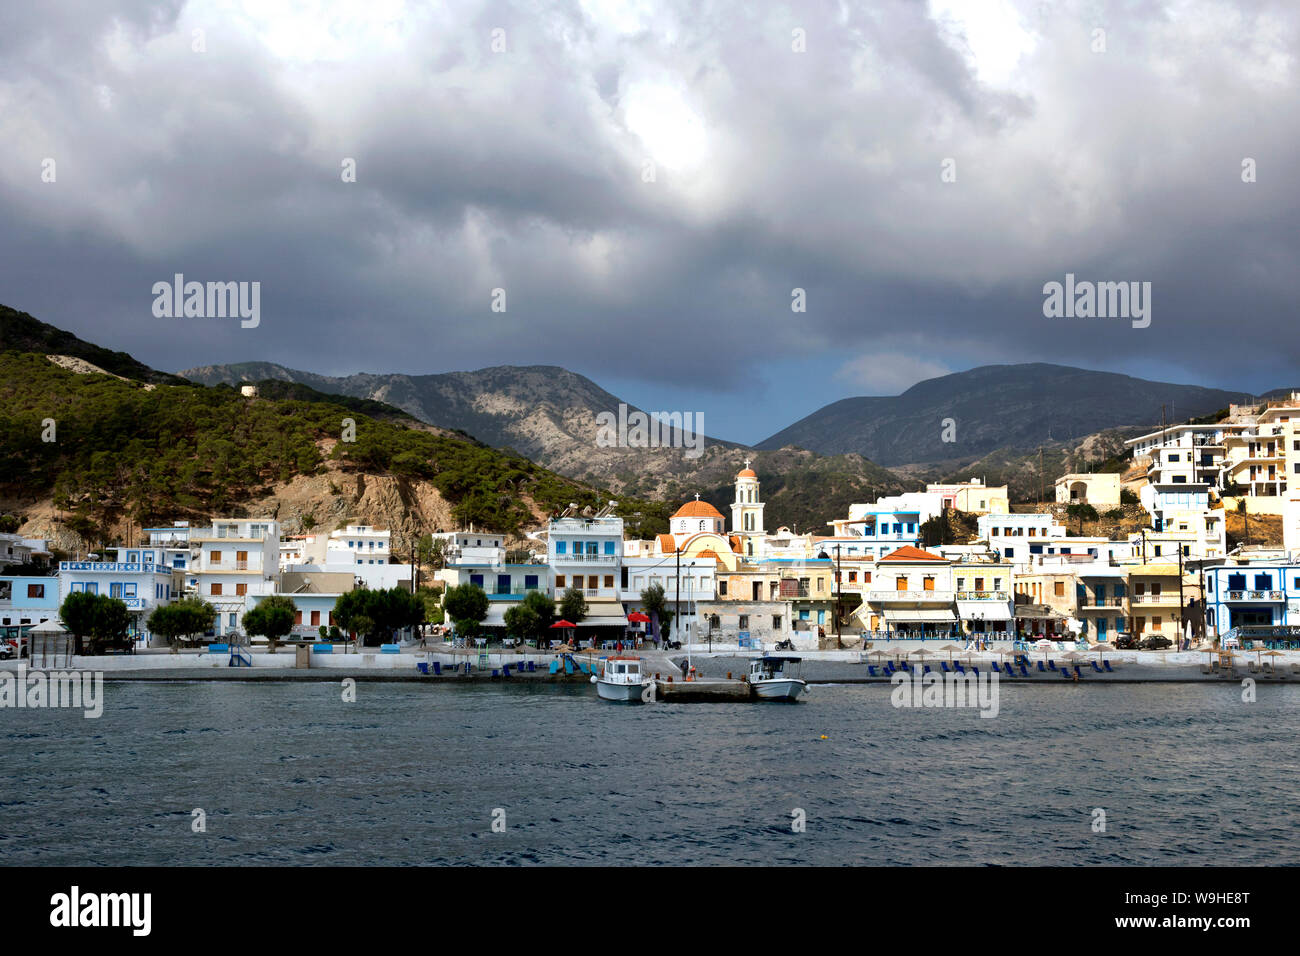 Karpathos island - Diafani, panoramic view from the boat,  Aegean sea, Dodecanese Islands, Greece Stock Photo